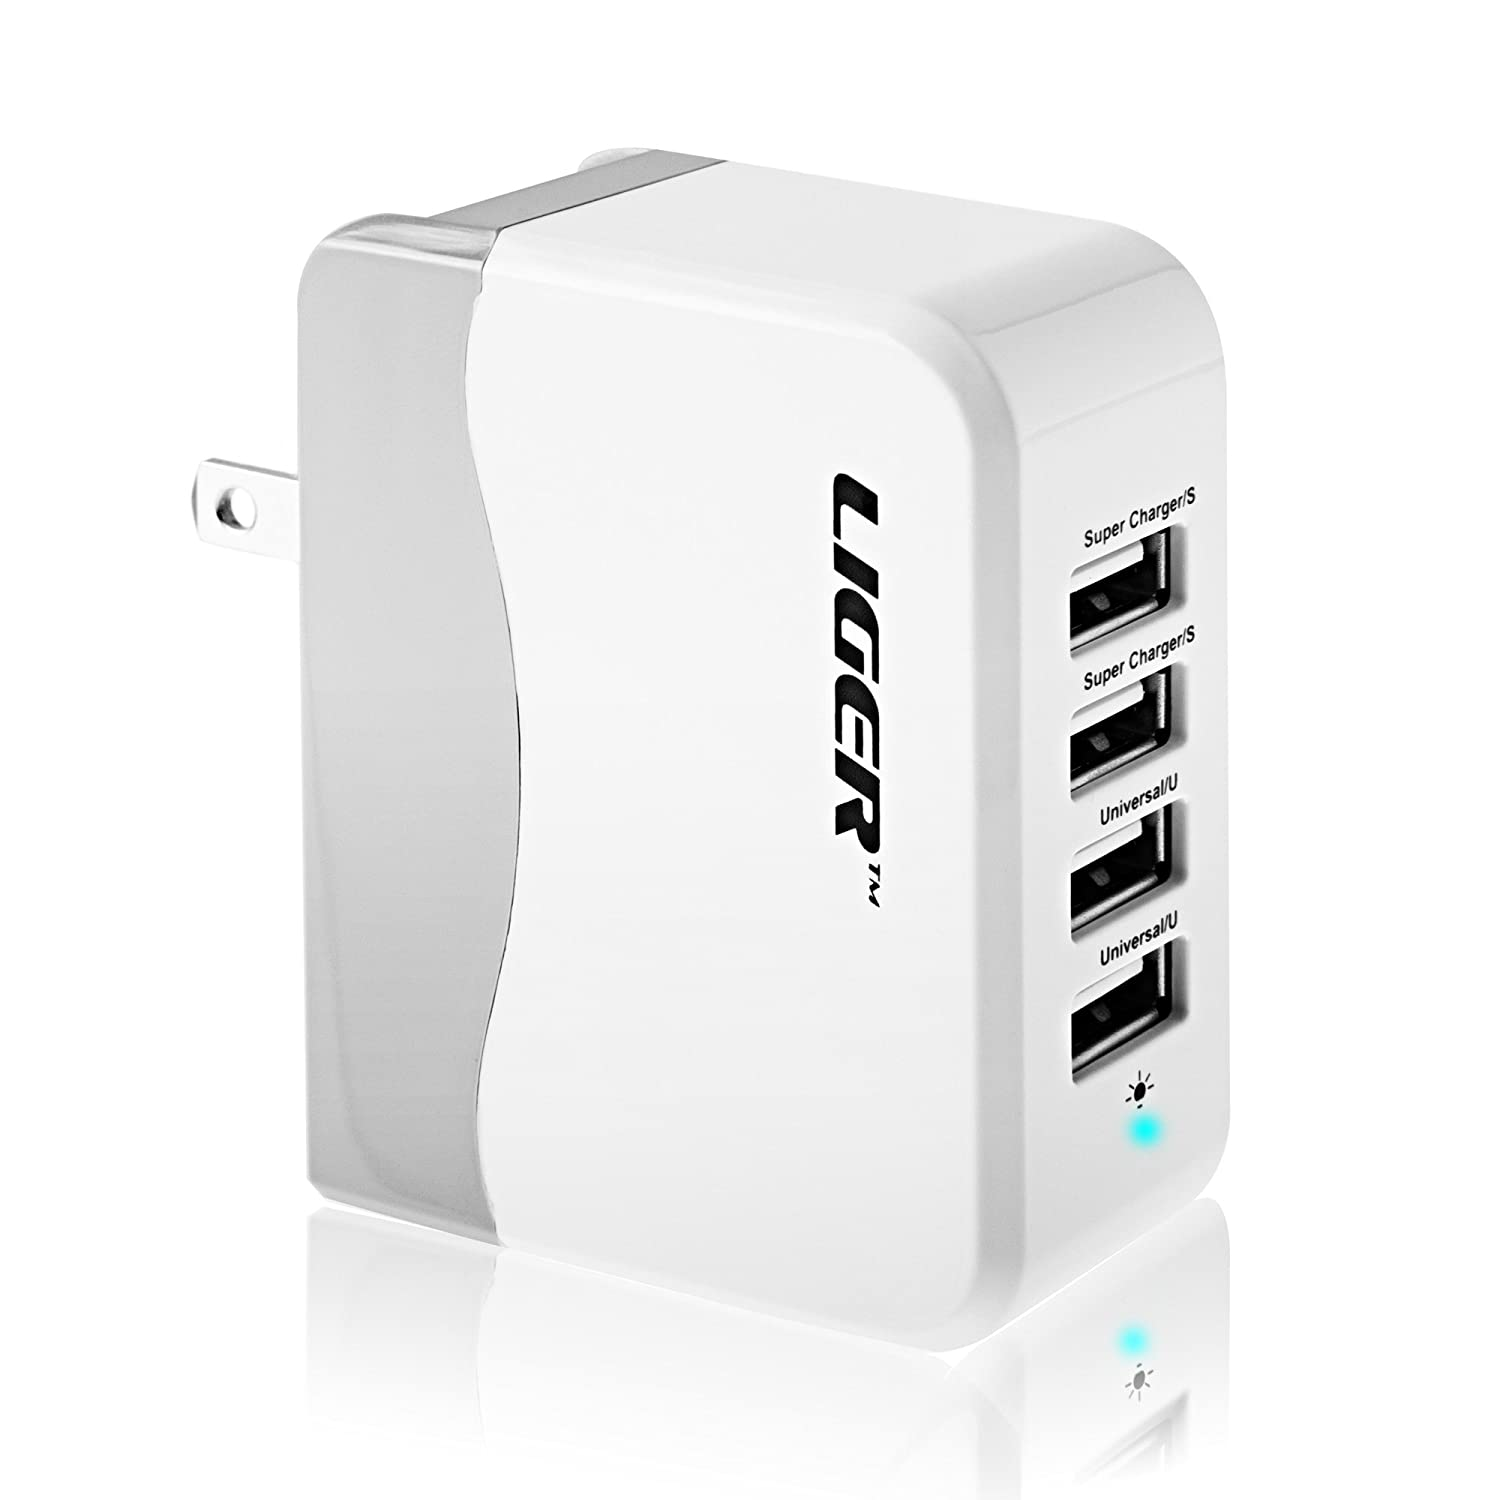 Amazon.com: [UL Certified] Wall Charger, Liger 34W 6.8A 4 Port USB Wall  Charger With Folding Plug Portable Charger For IPhone 6 Plus To 4, IPad  Mini,iPad ...